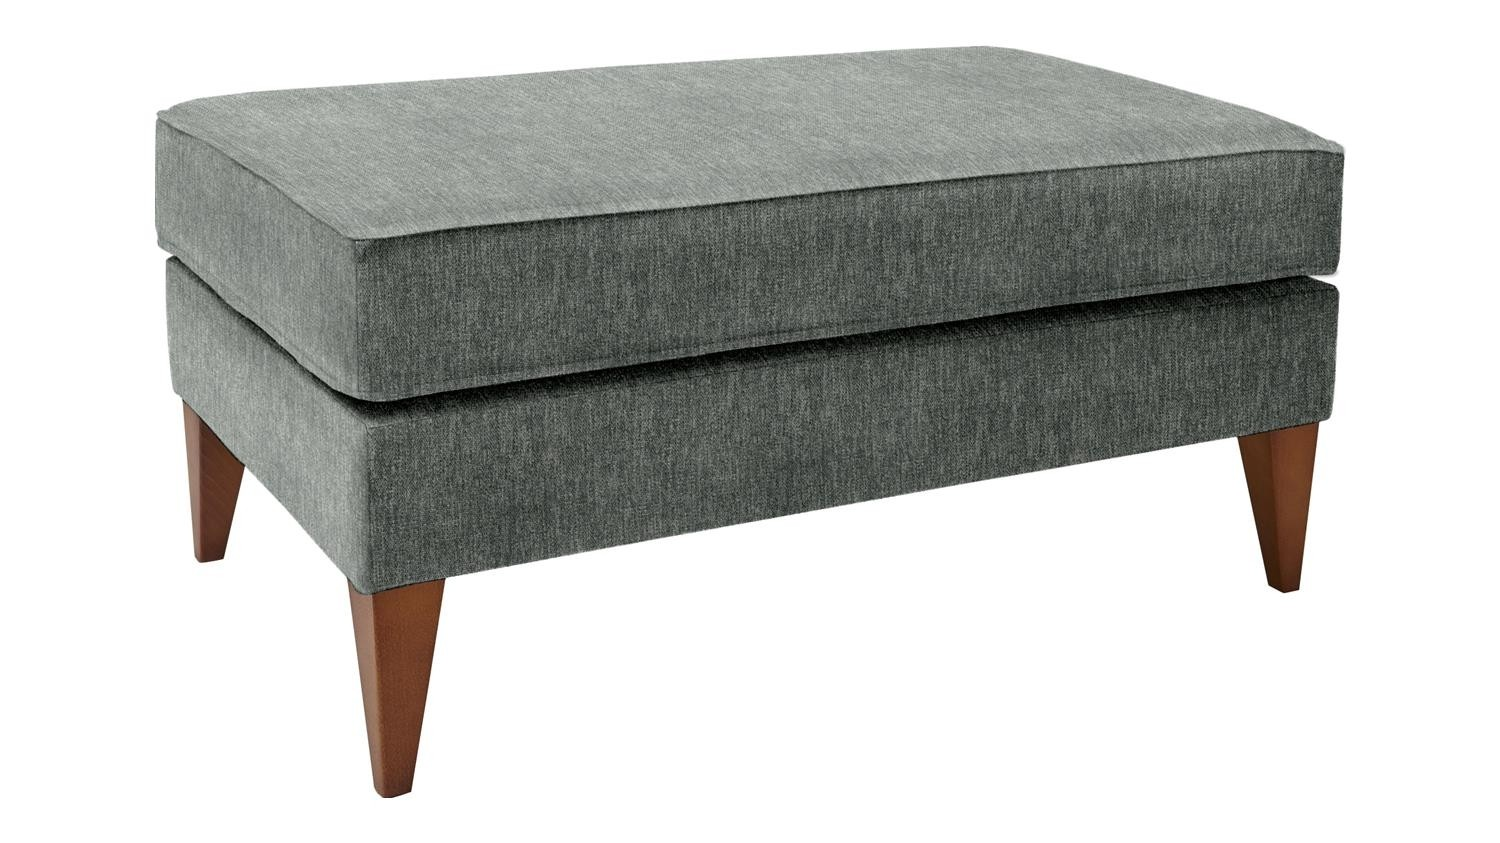 The Calne Medium Footstool